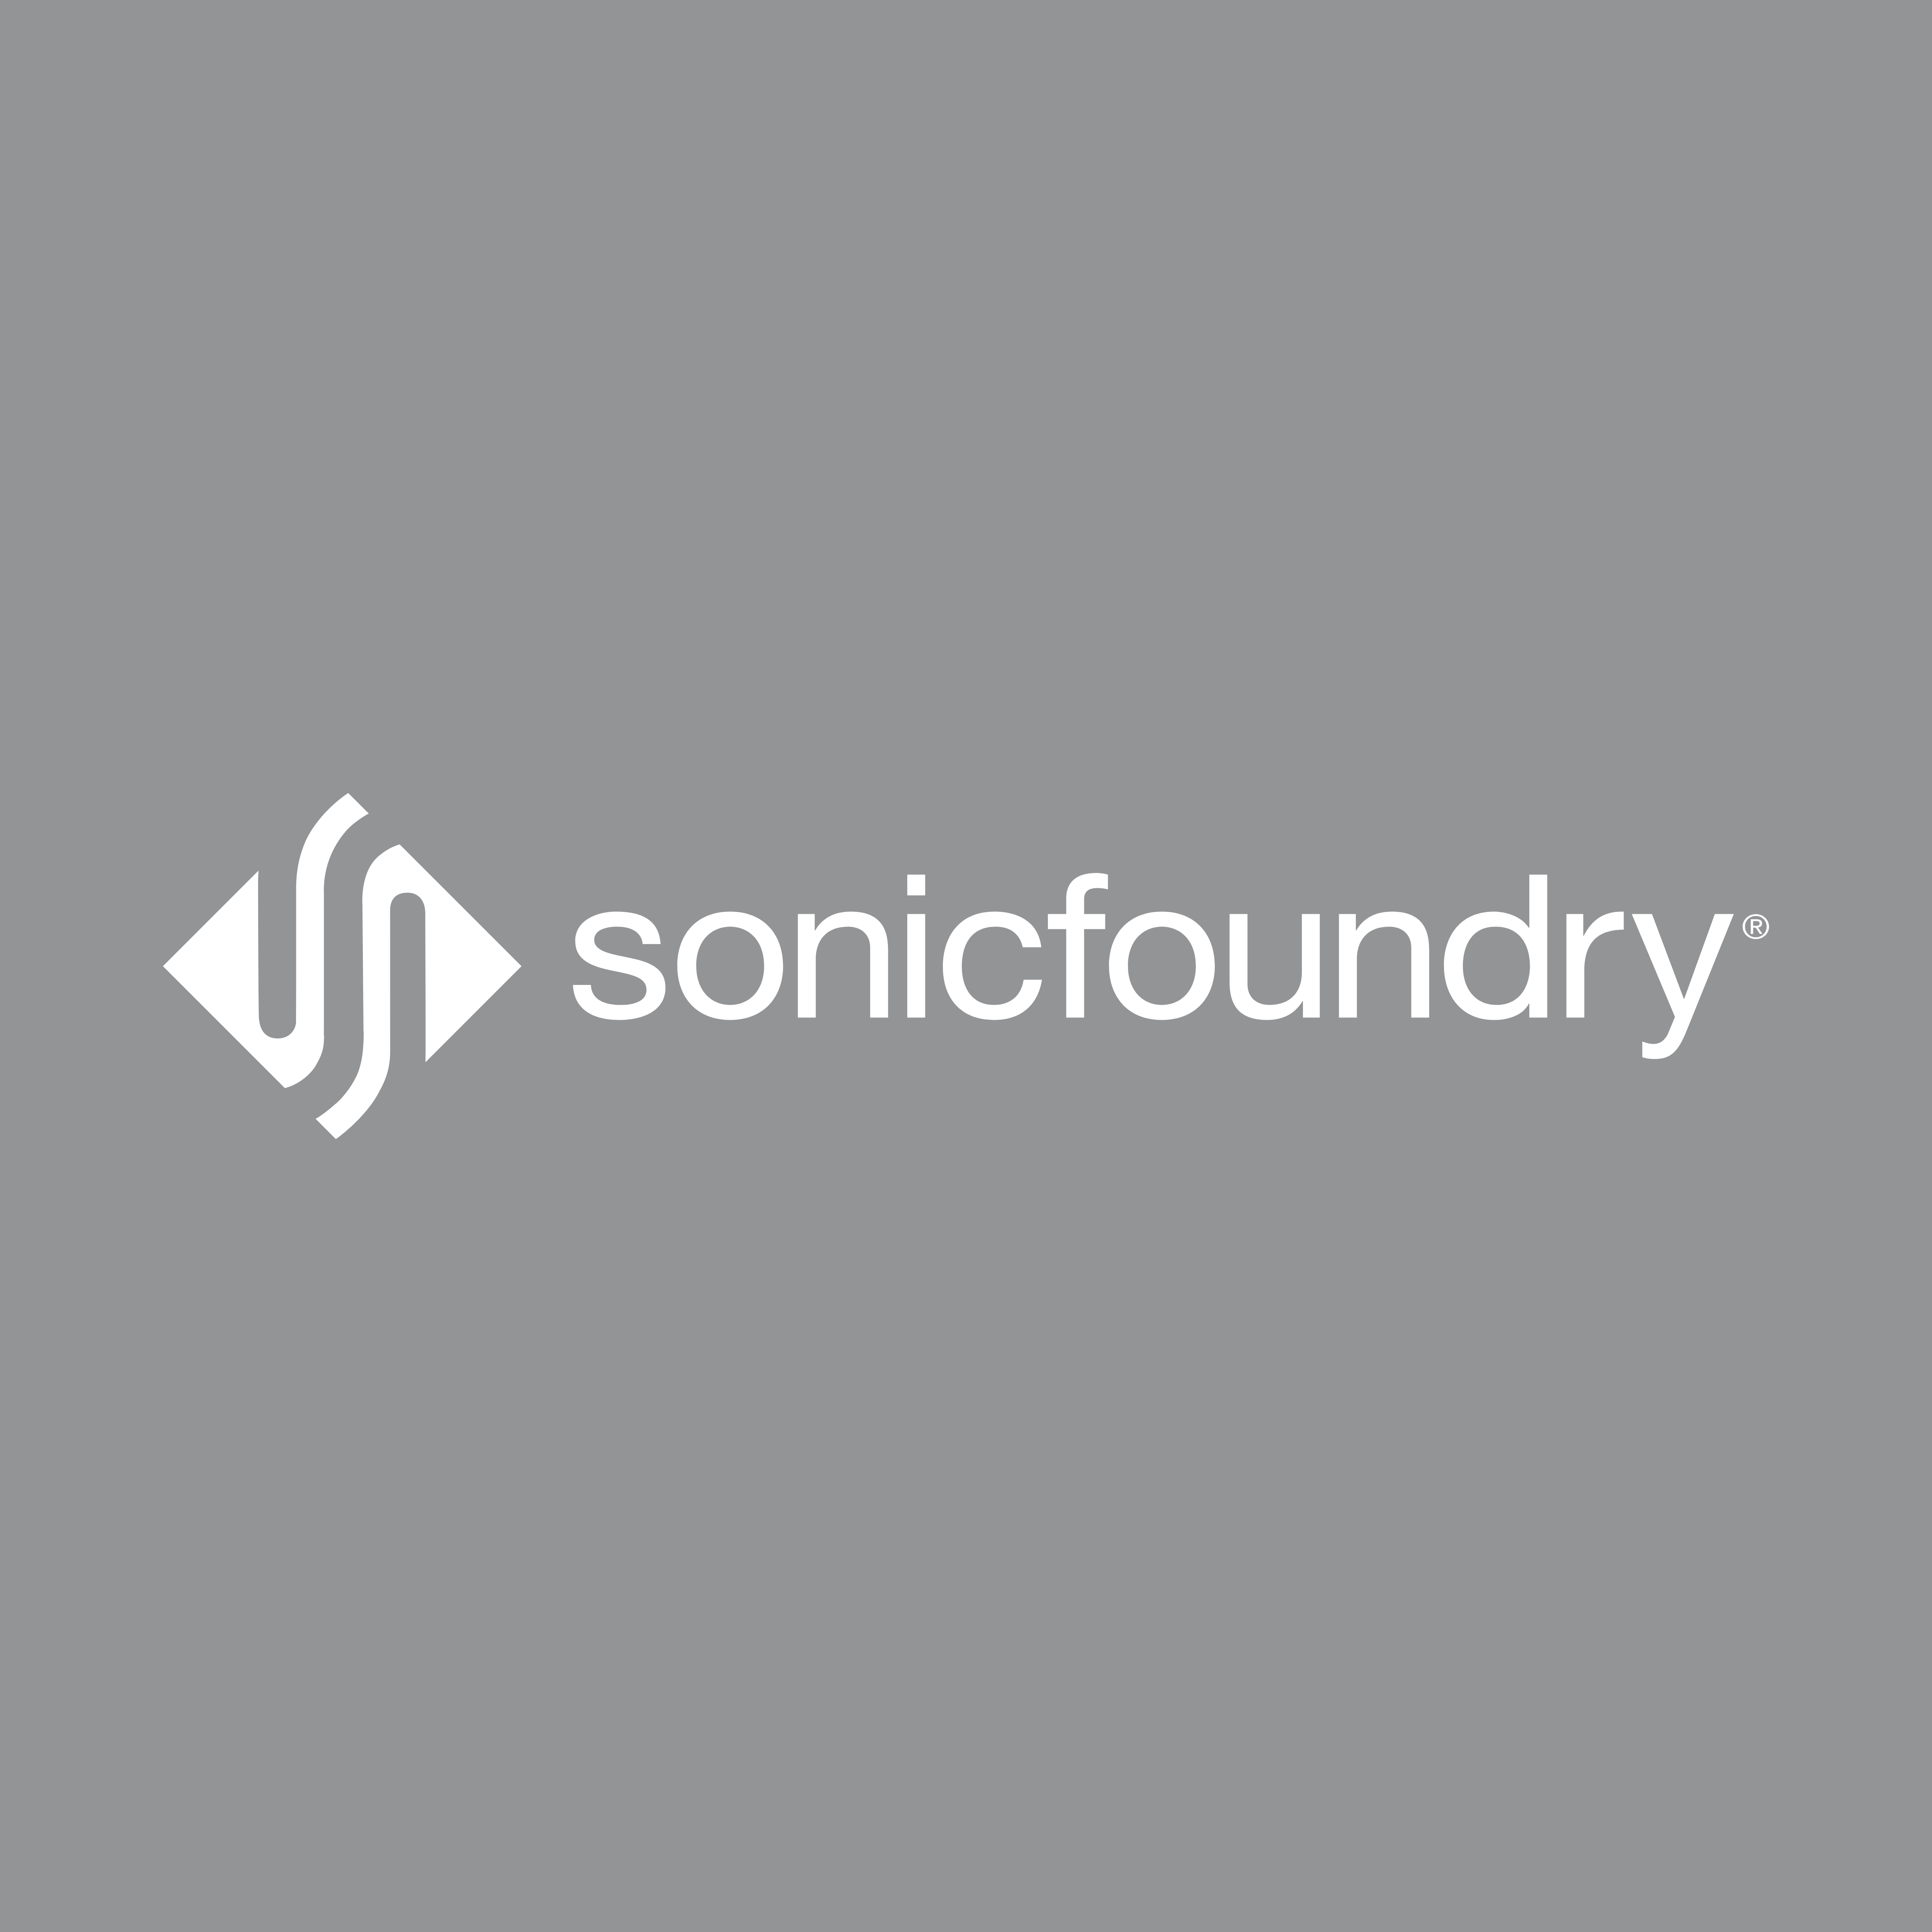 Sonic Foundry – Logos Download